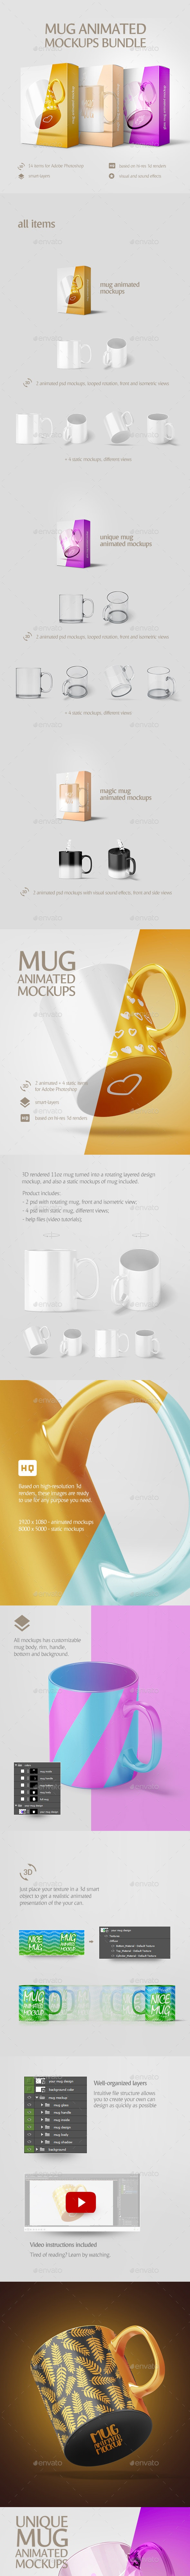 Mug Animated Mockups Bundle - Stationery Print